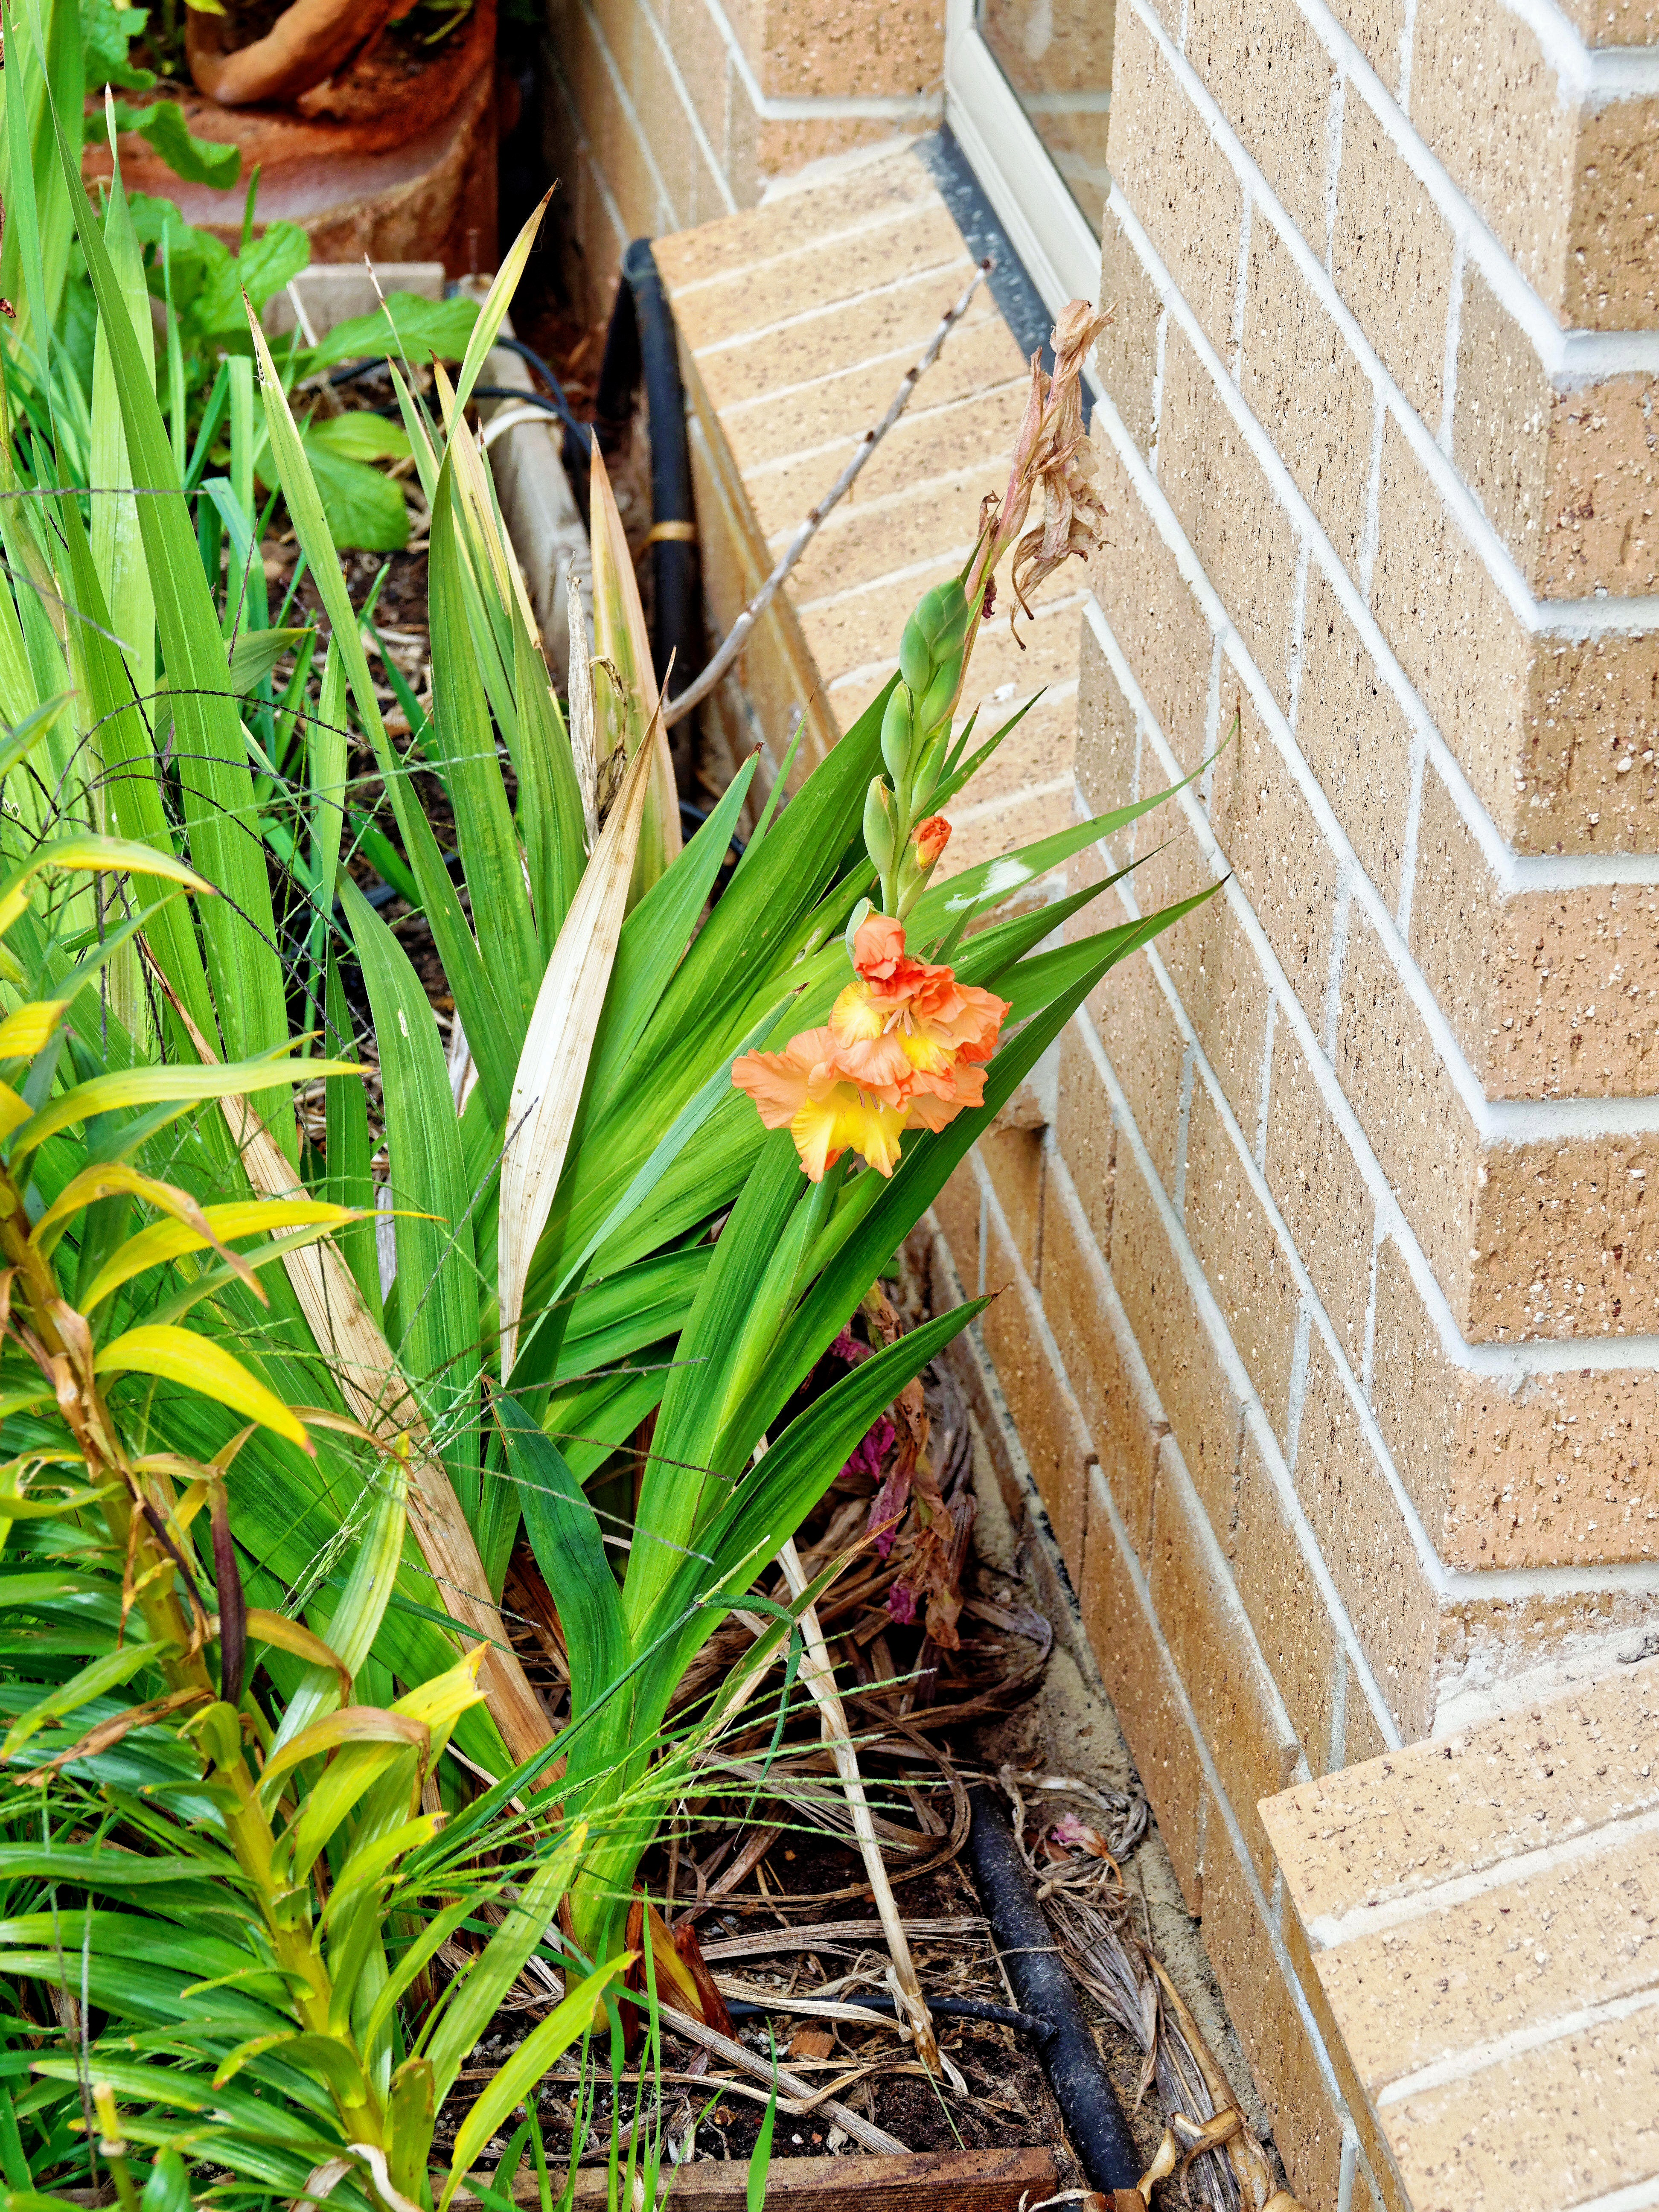 This should be Gladiolus.jpeg.  Is it missing?